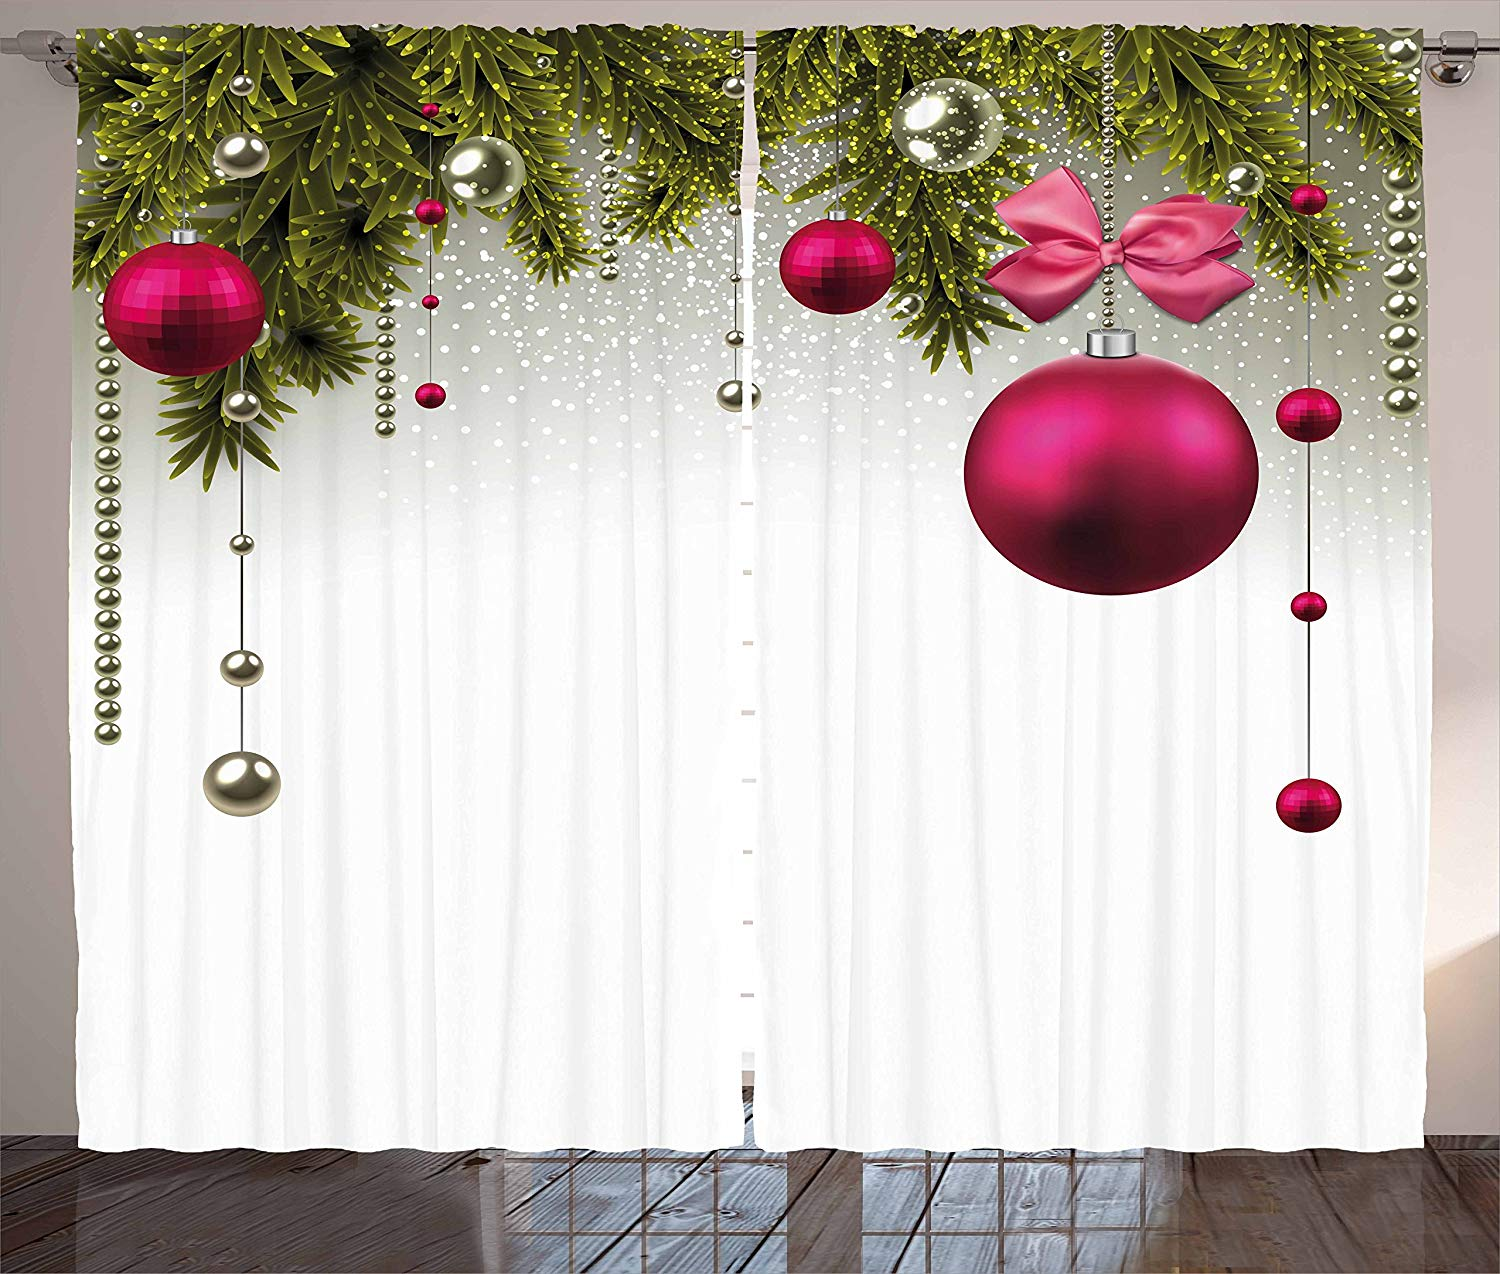 Christmas Curtains Vivid Fir Twigs And Magenta Balls Framework Special Day Preparation Living Room Bedroom Window Decor Panel